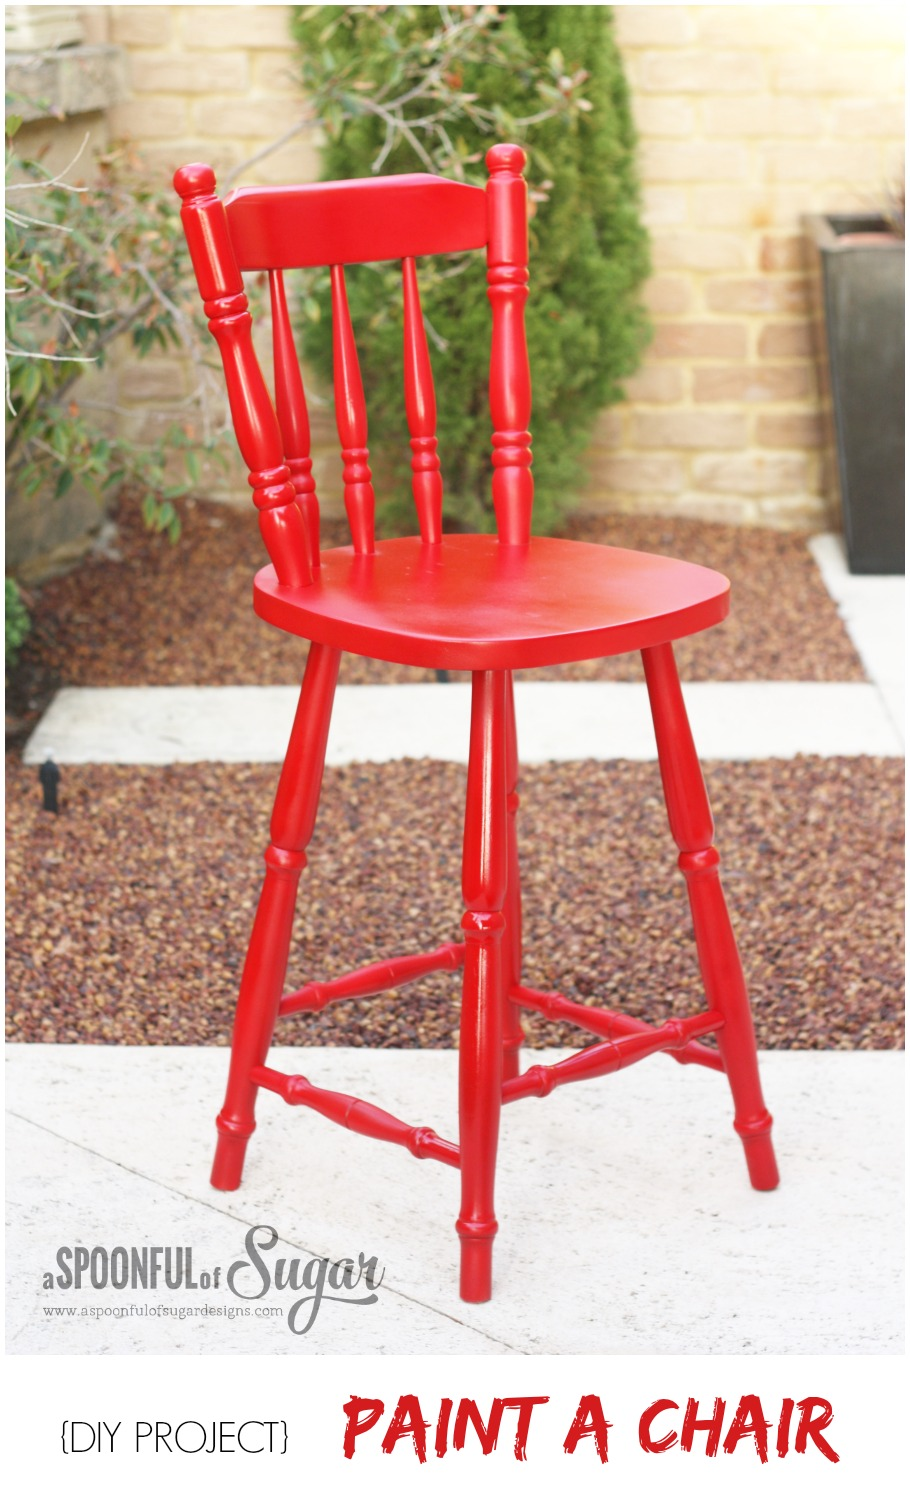 {DIY PROJECT} Paint a Chair